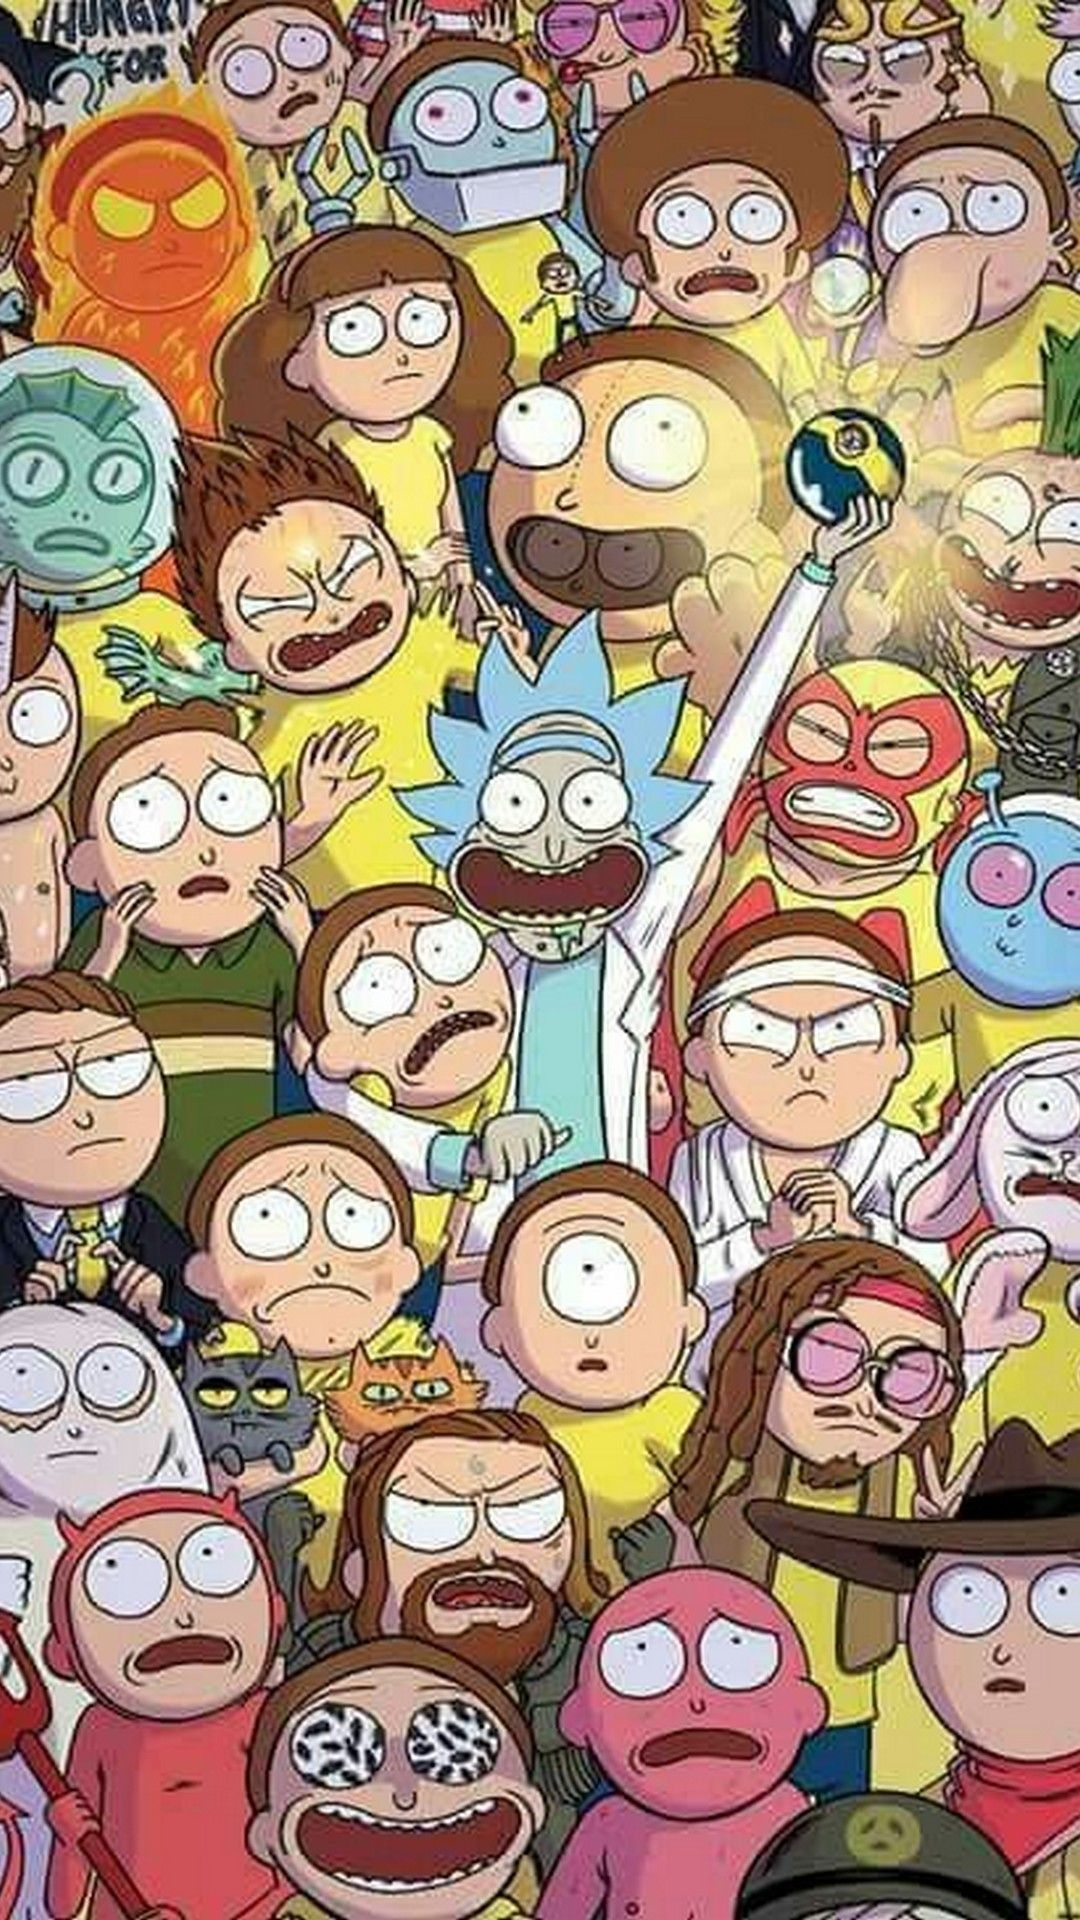 Image Result For Rick And Morty Hd Wallpaper Rick And Morty Poster Rick And Morty Cartoon Wallpaper